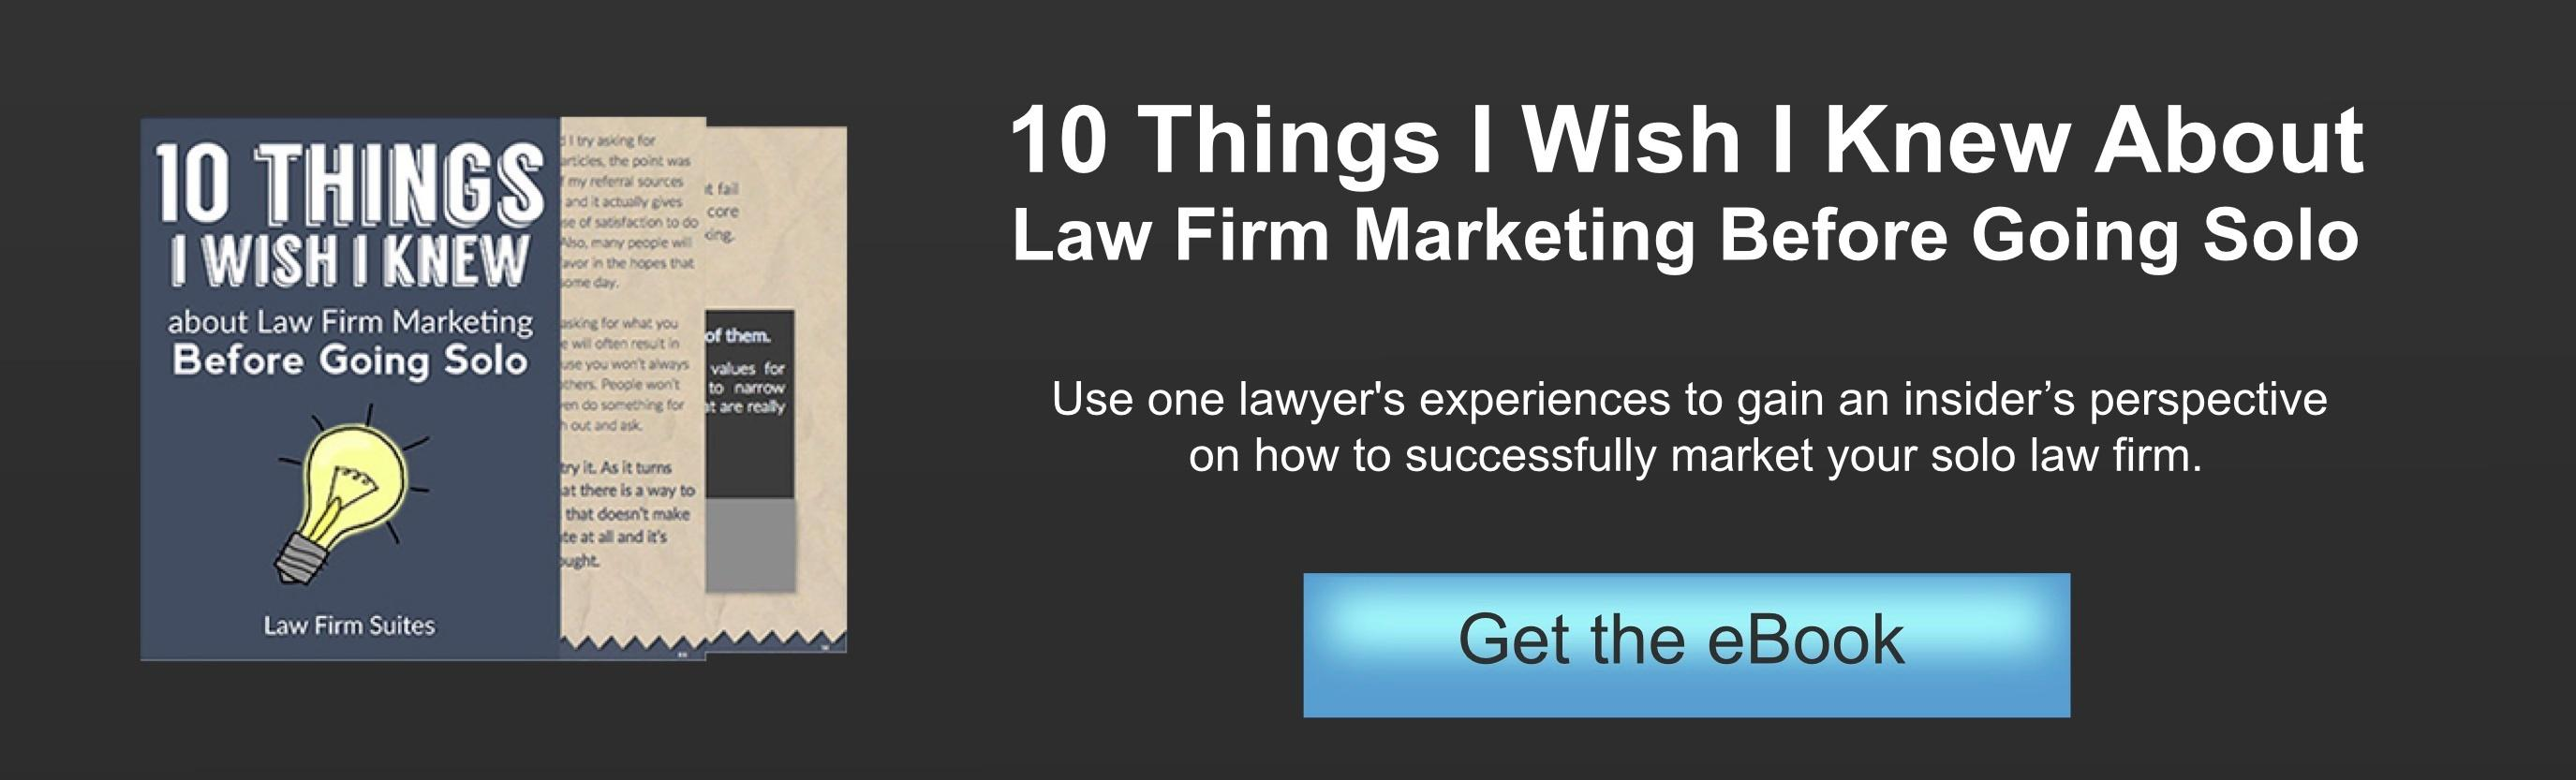 law firm marketing ebook